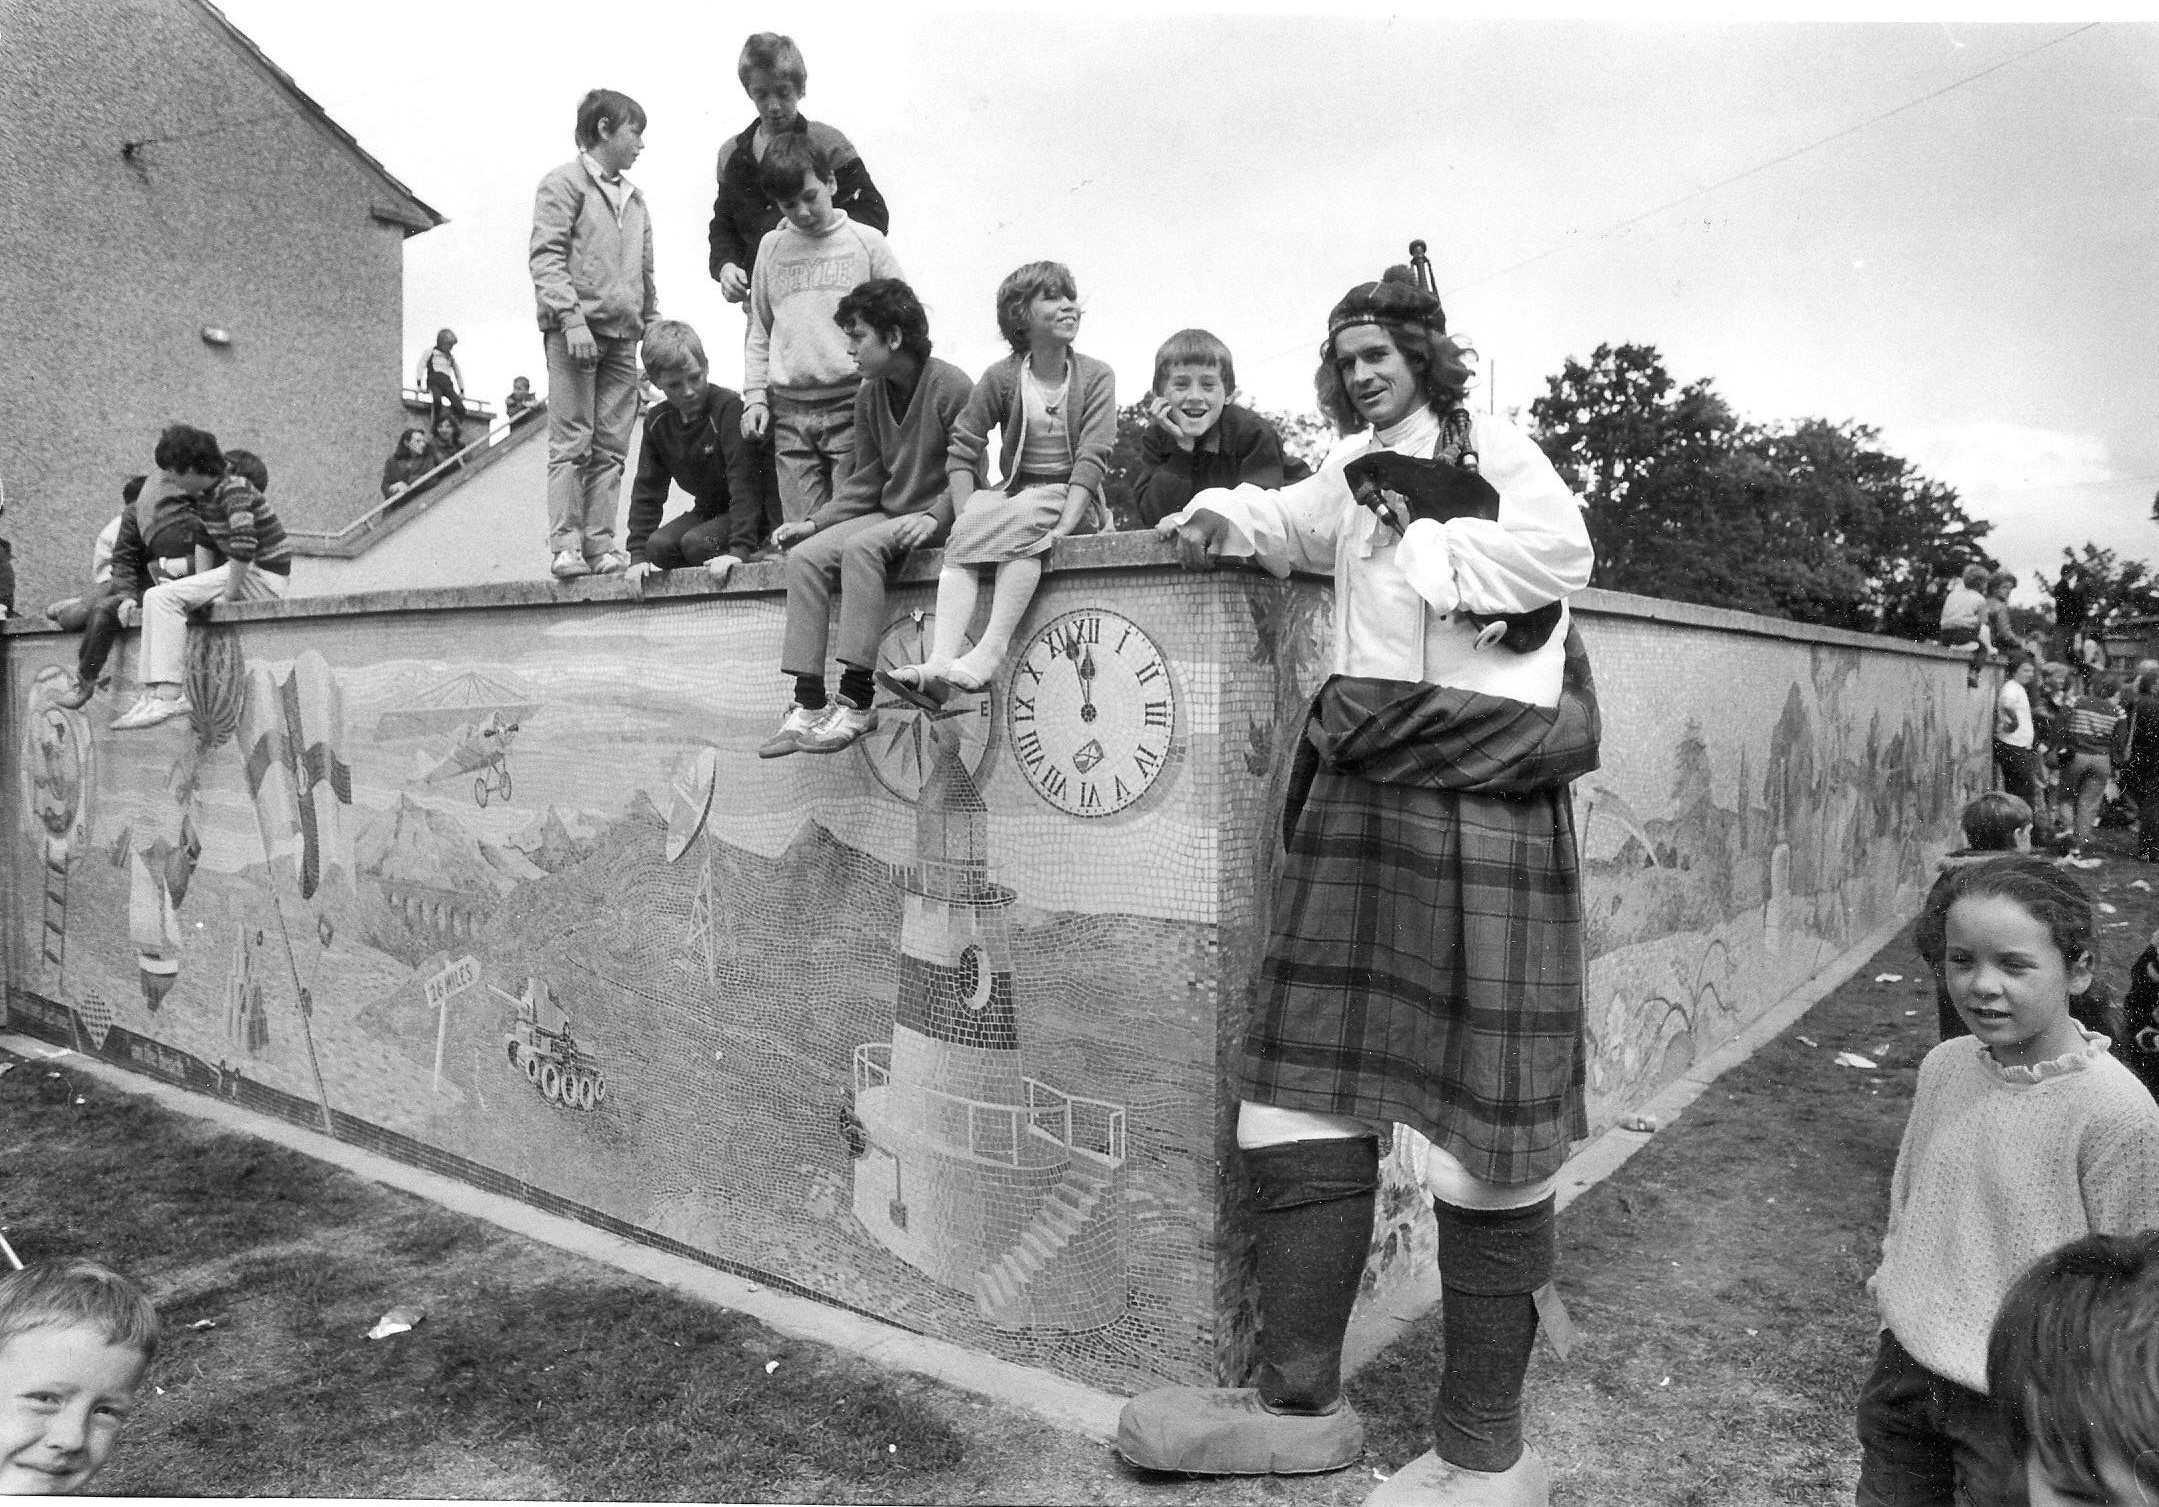 Glasgow mystery: Easterhouse mural 'biggest in Britain' - but where is it now?